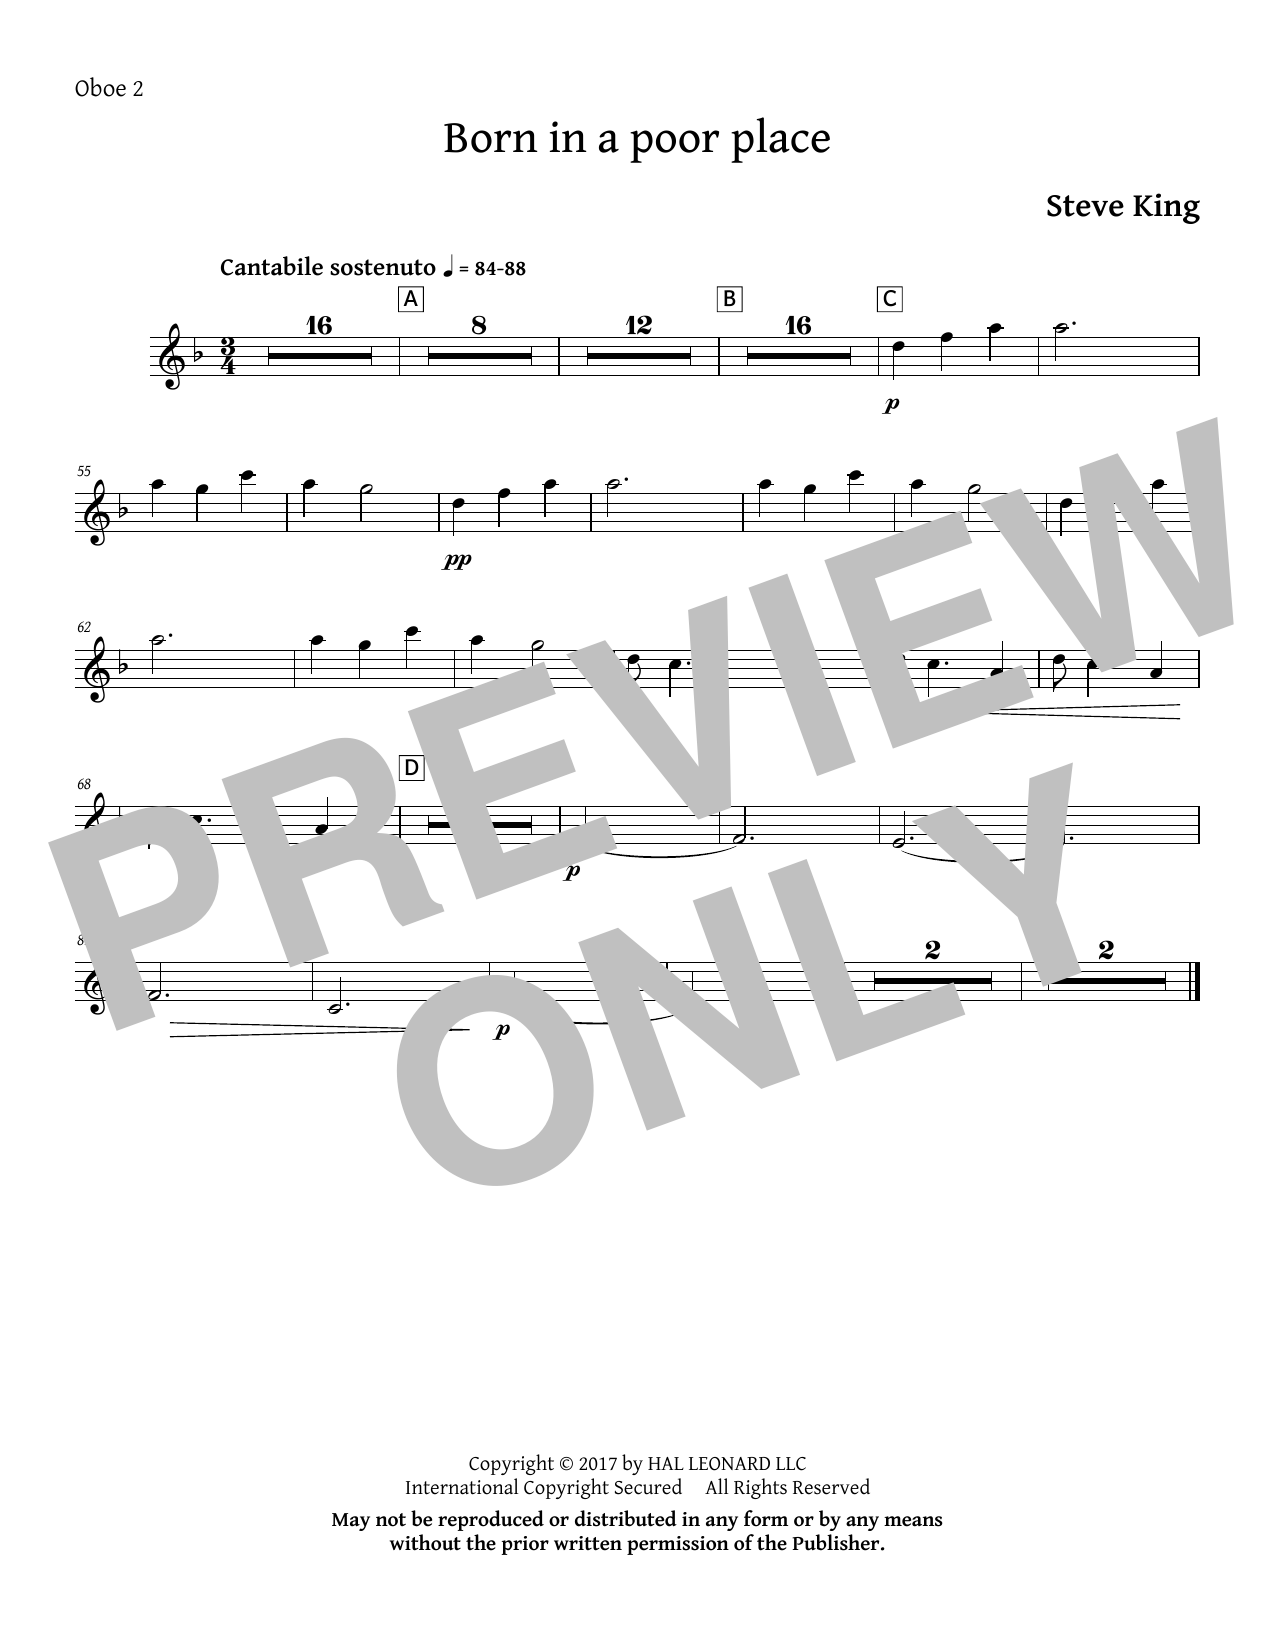 Born in a Poor Place - Oboe 2 Sheet Music